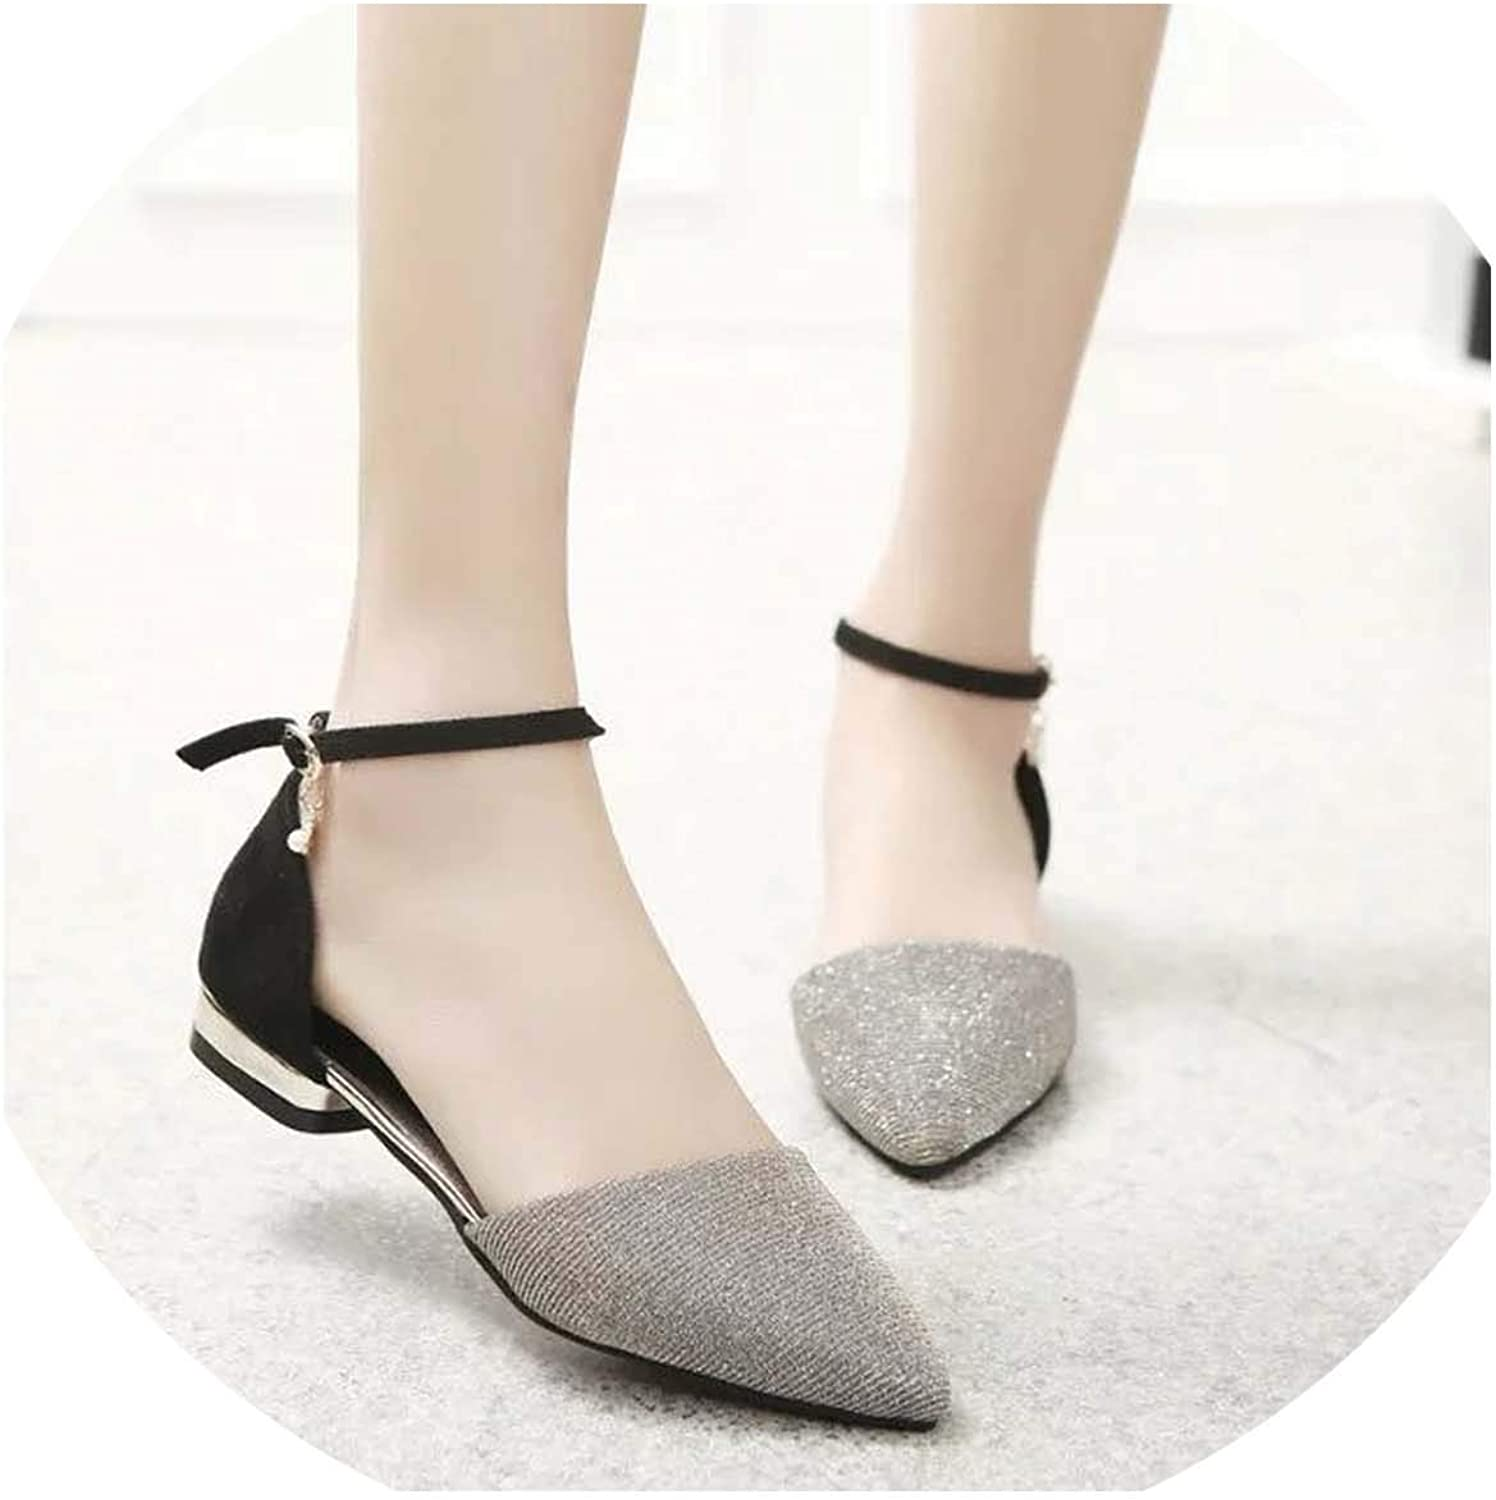 HuangKang Women Sandals Thick High Heel Ankle Strap Fashion Sandal Female Party shoes